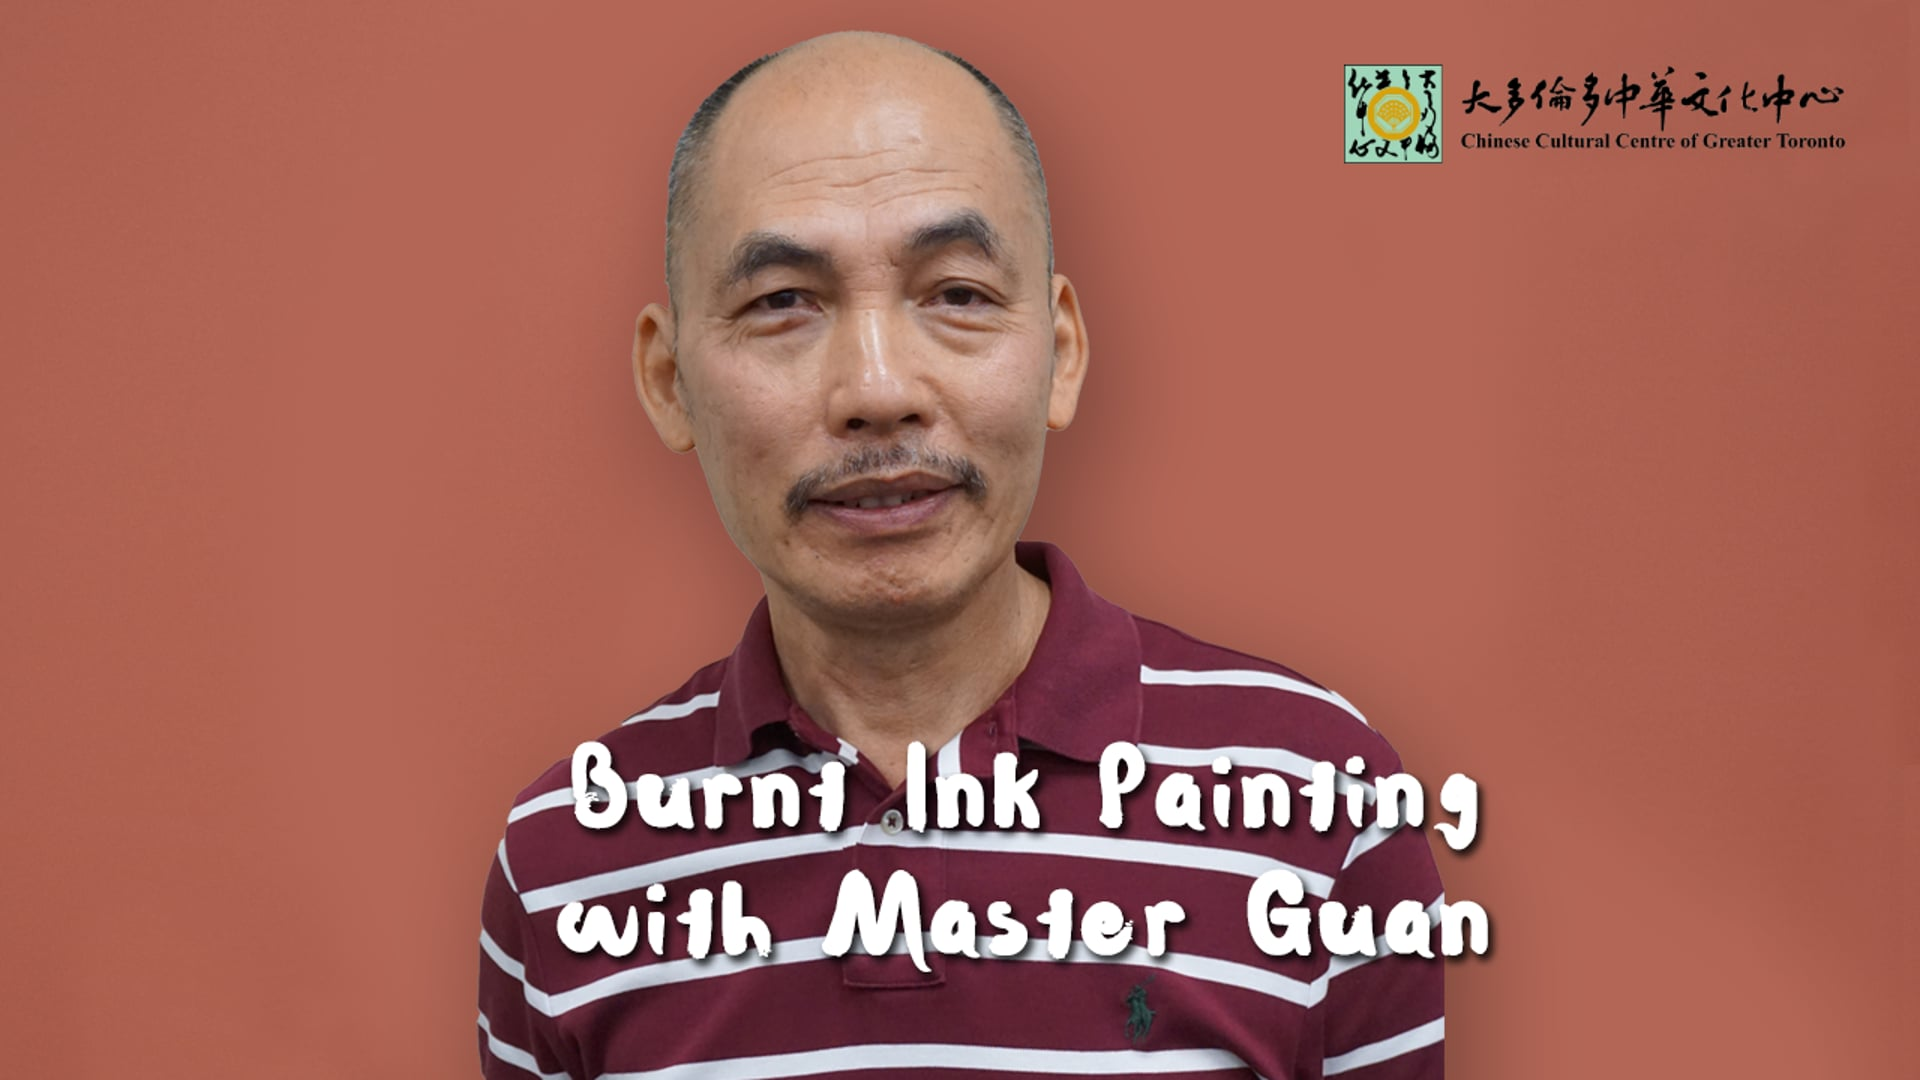 Burnt Ink Painting - Master Guan   CCC Connect